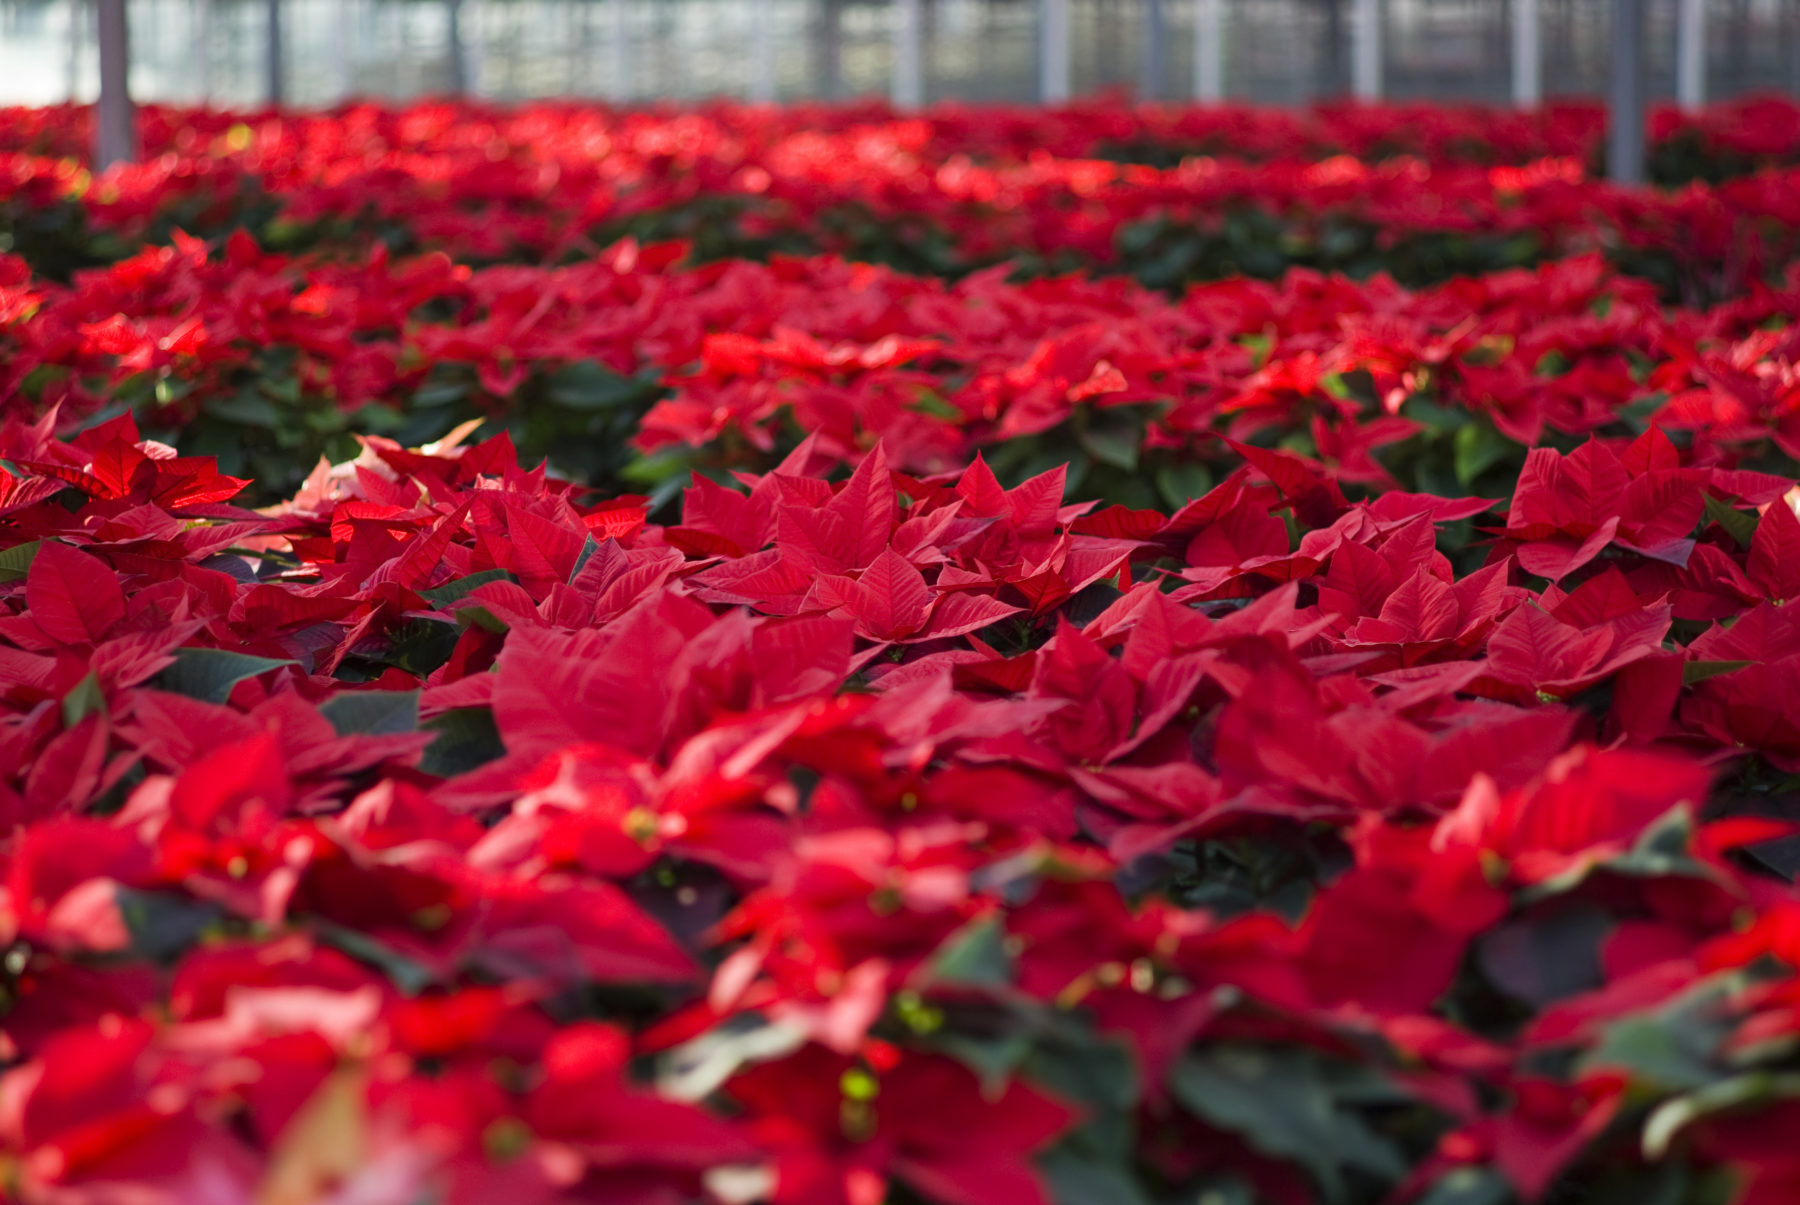 Poinsettias 101 Everything You Need To Know About This Christmas